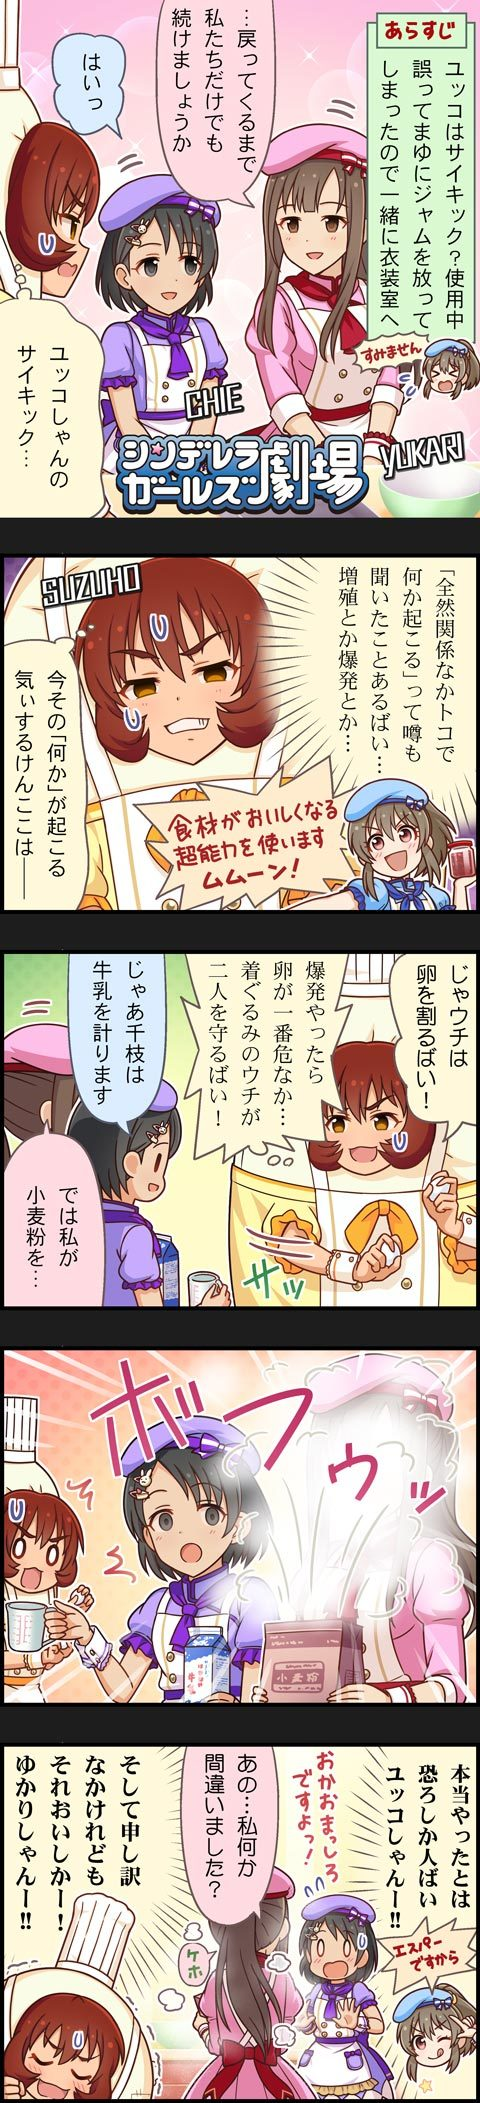 5koma beret black_eyes black_hair brown_eyes brown_hair character_name chef_hat comic costume hat high_ponytail highres hori_yuuko idolmaster idolmaster_cinderella_girls long_hair long_image mizumoto_yukari multiple_girls official_art ponytail sasaki_chie short_hair short_ponytail tall_image ueda_suzuho